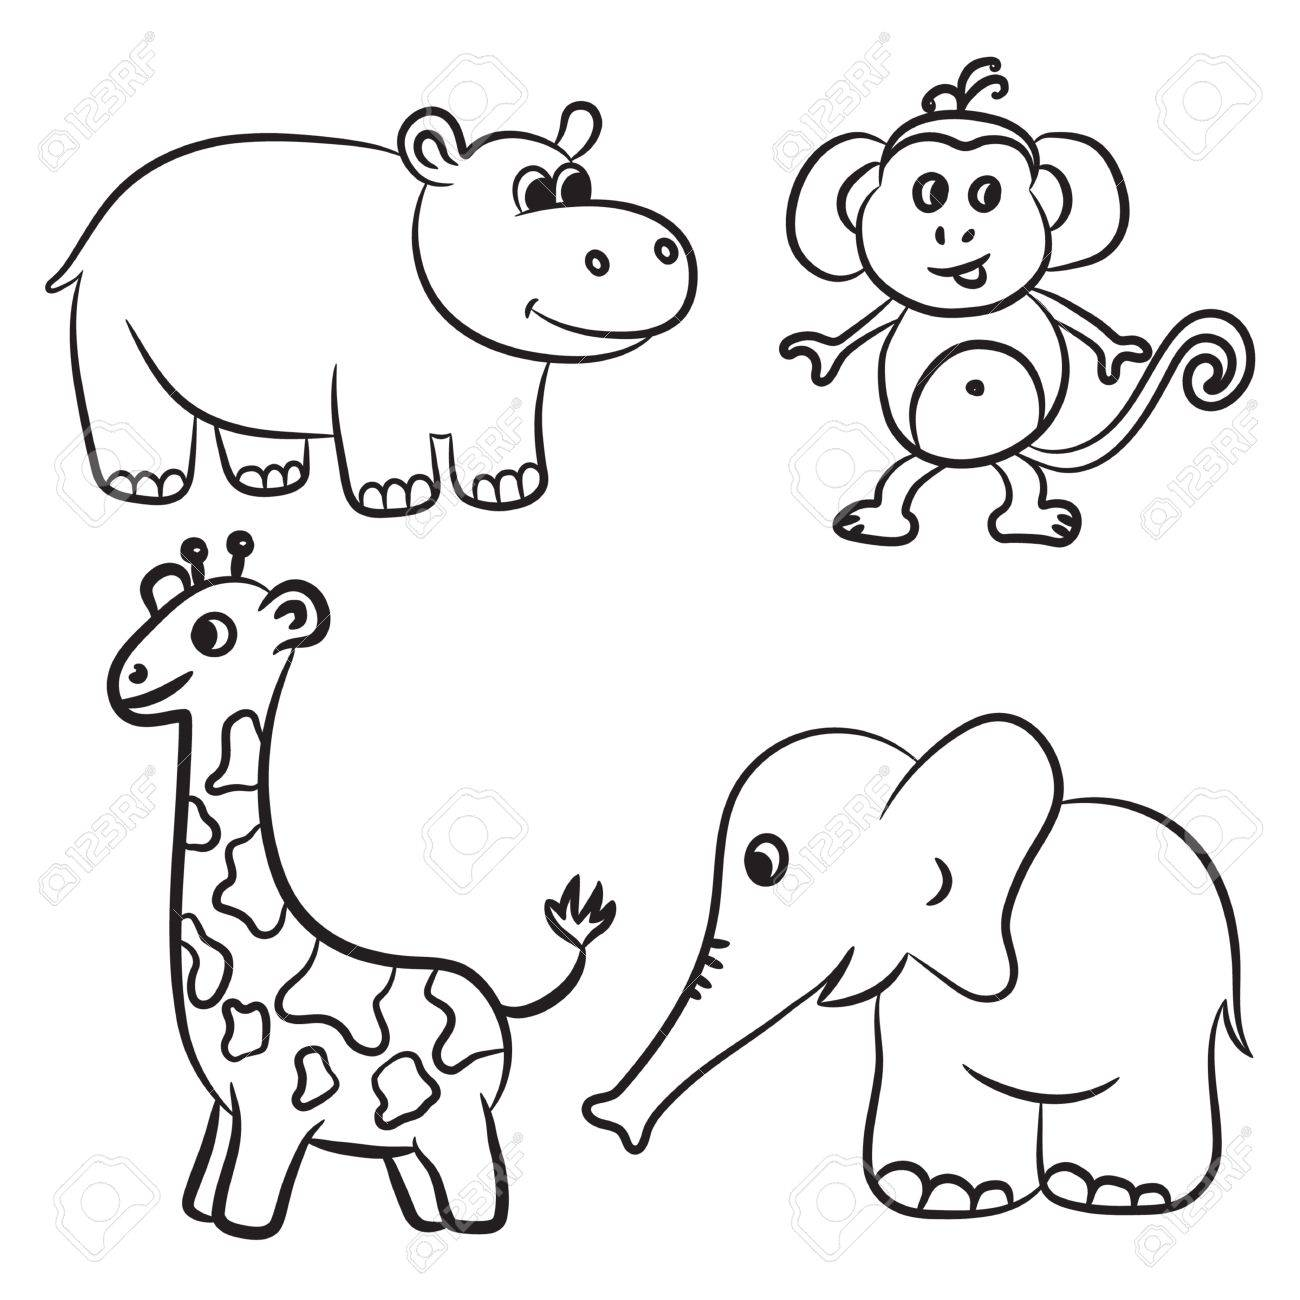 Animals Black And White Clipart Zoo Pictures On Cliparts